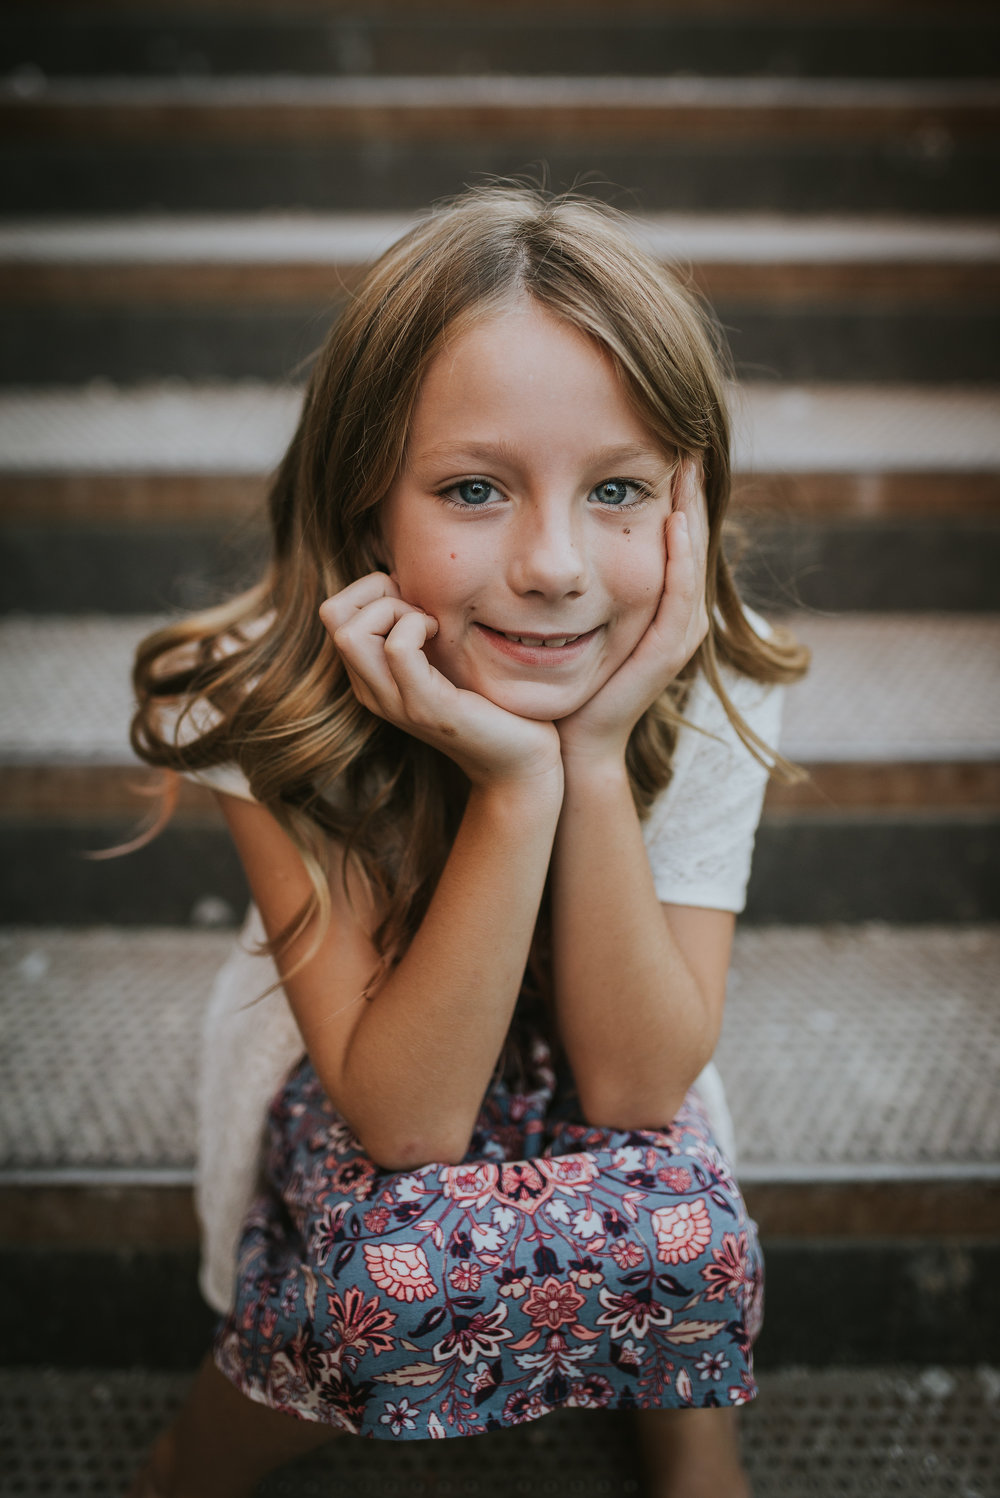 Abby Kennan Photography-San Antonio Family Photographer-The Pearl Photo Session-San Antonio Child Photographer-The Historic Pearl Brewery.jpg